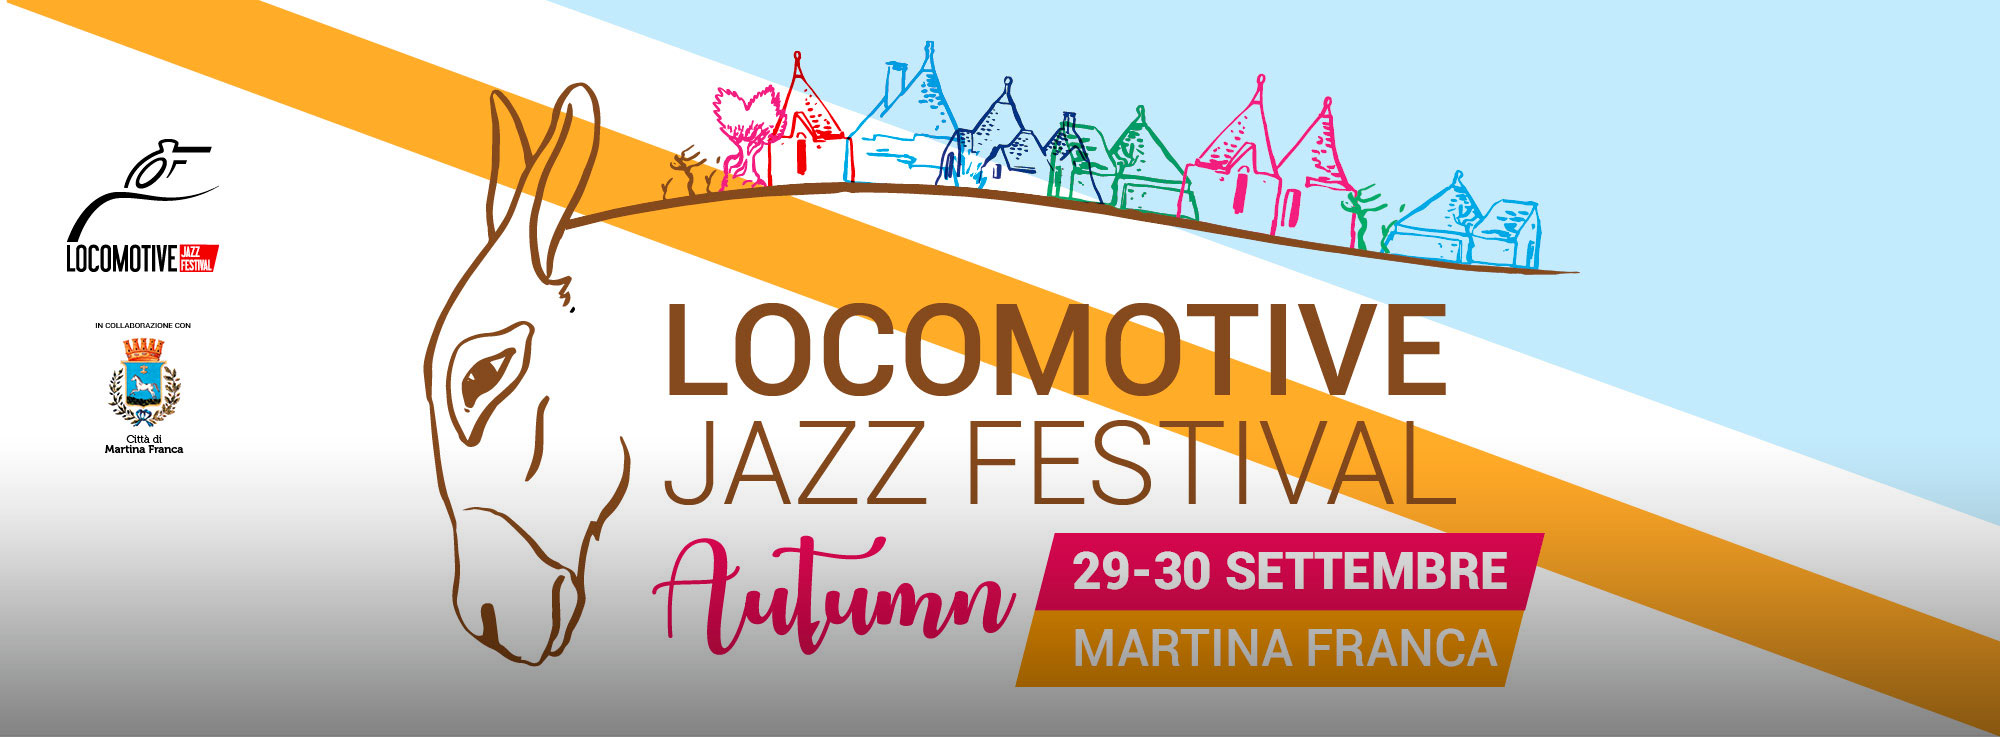 Martina Franca: Locomotive Jazz Festival - Autumn Edition